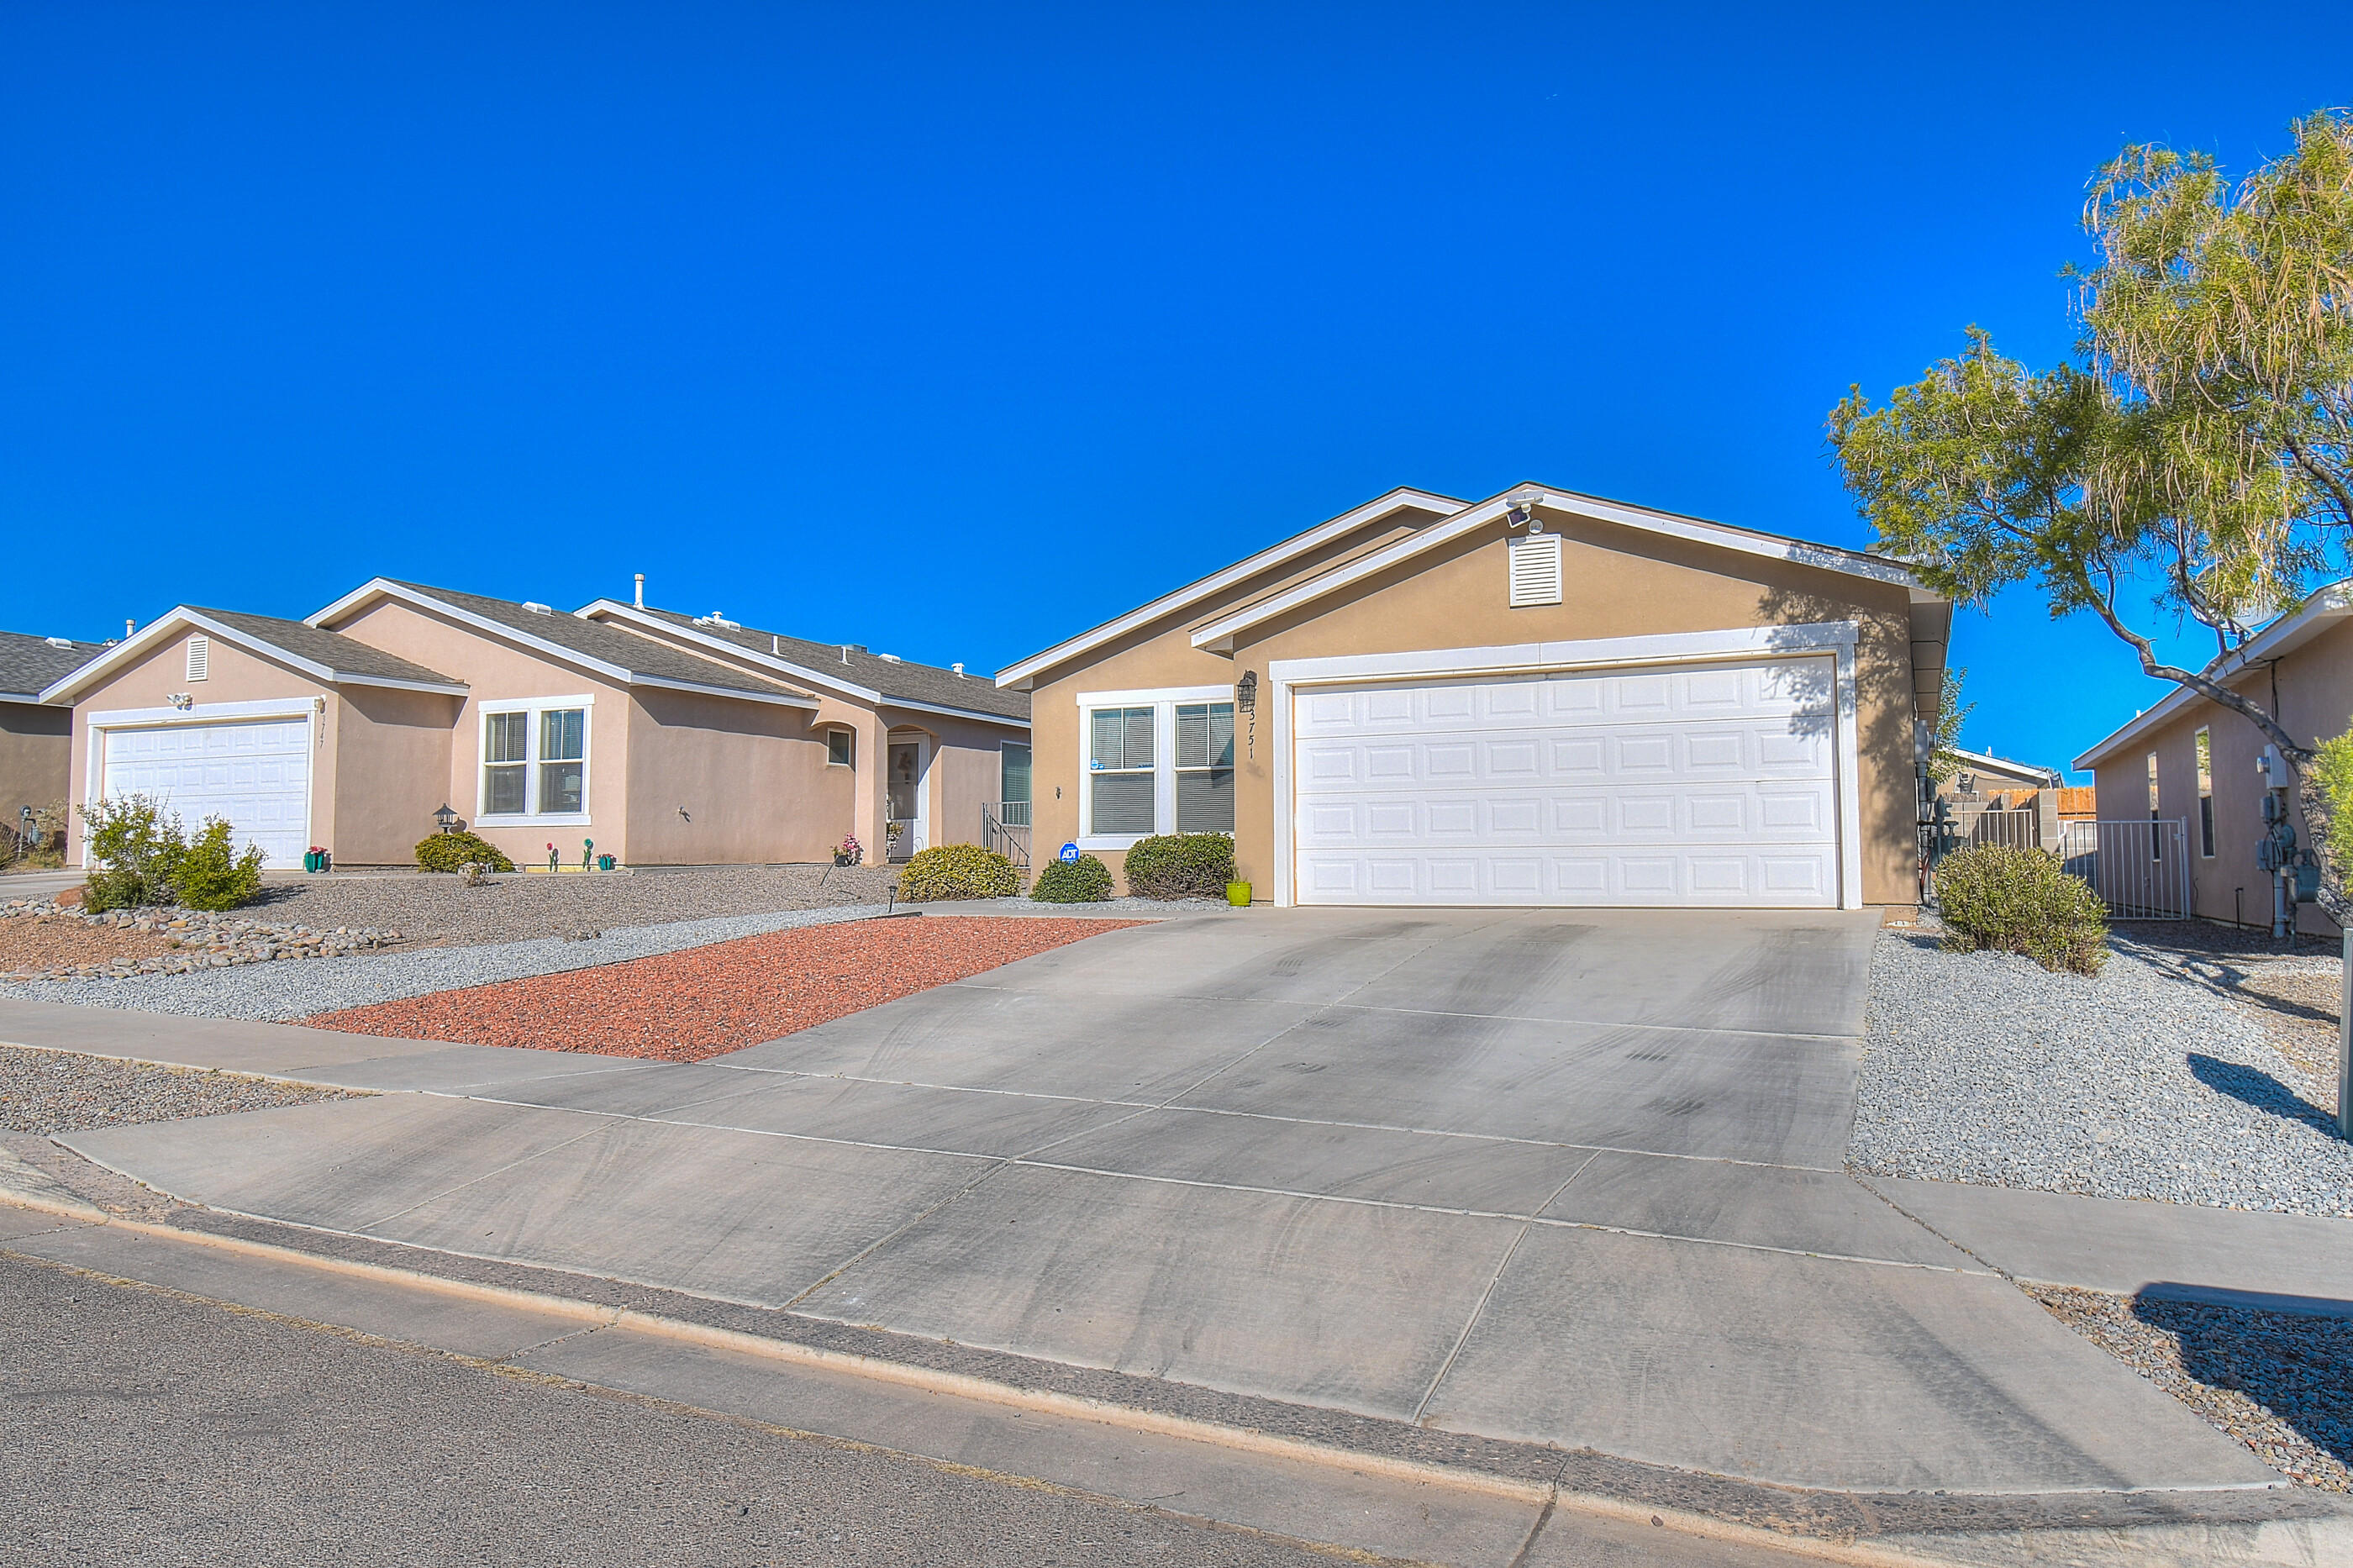 Gorgeous home in the heart of Rio Rancho.  This four bedroom stunner has it all with a new 2019 roof, 2020 water heater, 2020 stove, and both a new A/C and furnace just installed in 2018.  The garage also features insulation, cabinets, and a work bench for great DIY projects. The open and spacious floorplan includes a lustrous kitchen with kitchen island, pantry, and breakfast bar that opens up to the bright and large great room.  The master bedroom is tucked away for privacy with two closets and a great view of the backyard.  The other bedrooms are spacious and perfect for relaxing.    Come call this beauty yours today!